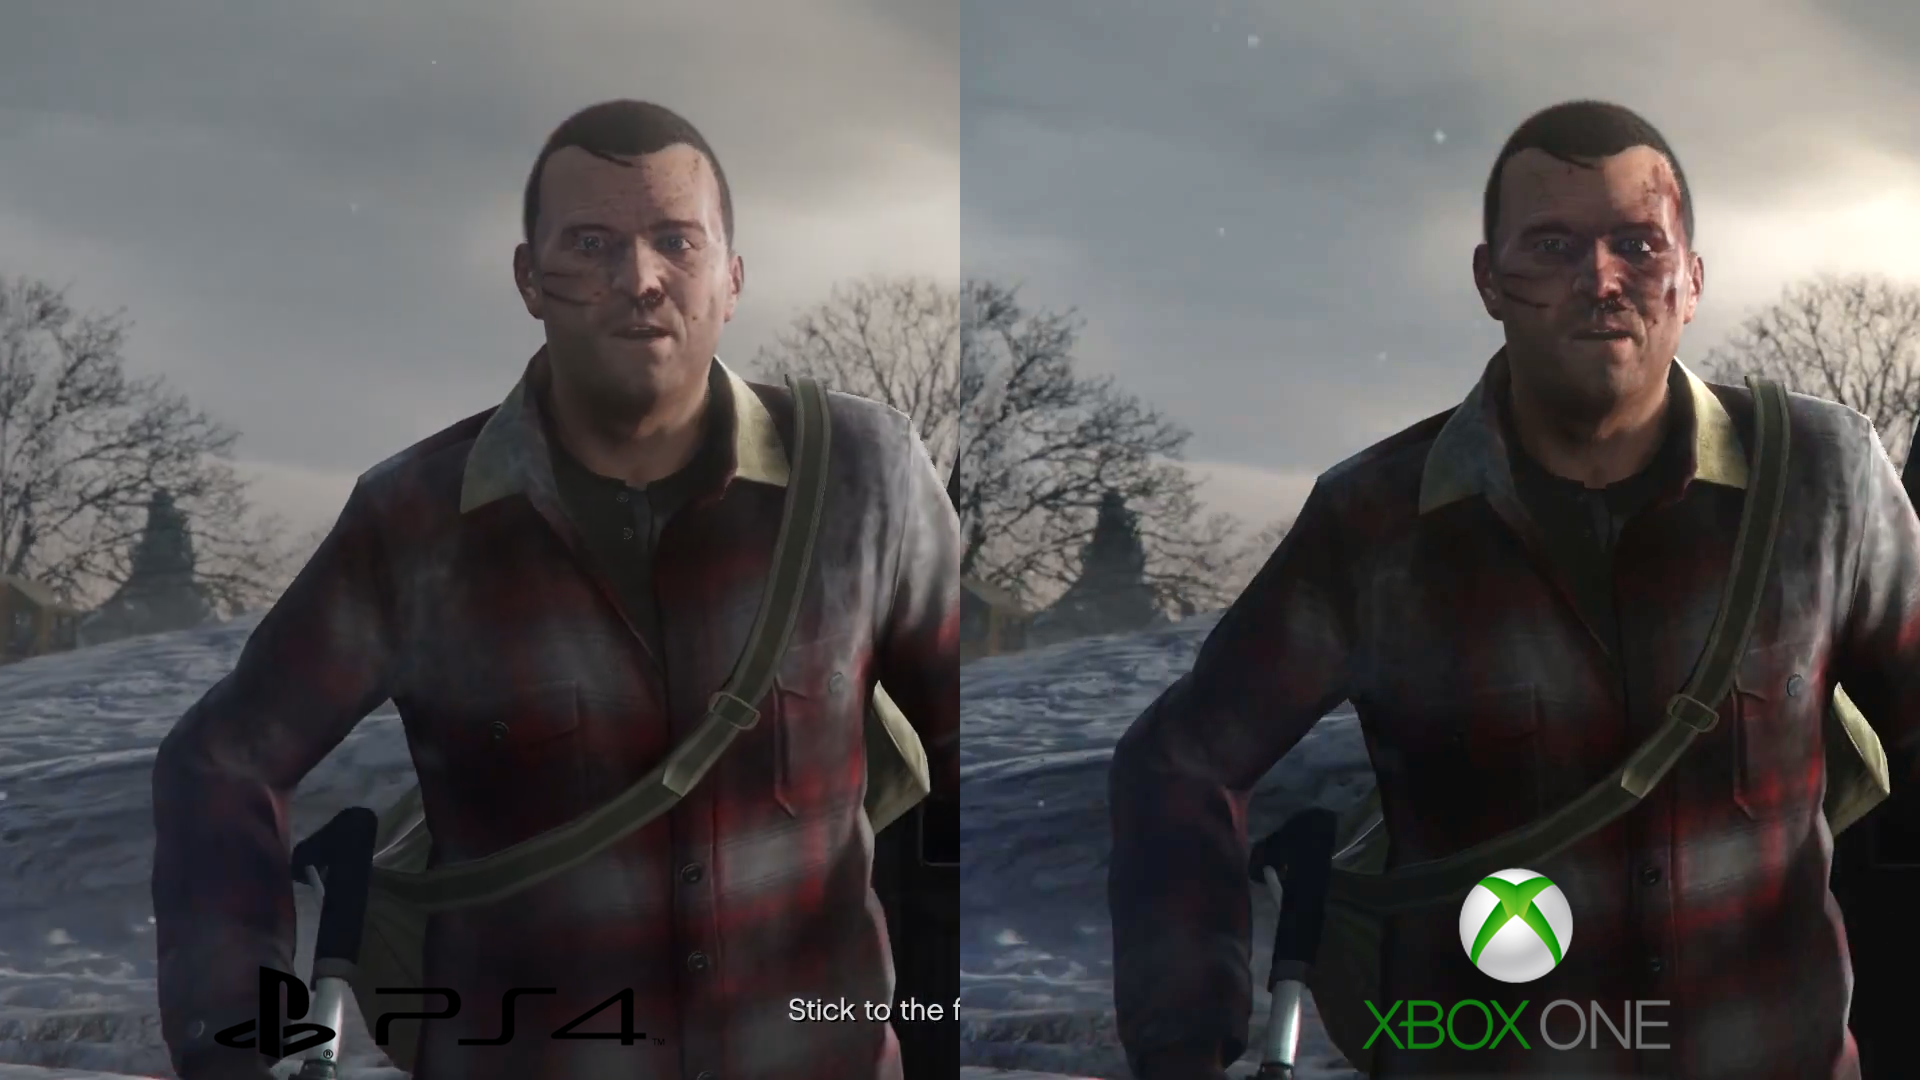 Gta V Ps4 Vs Xbox One 1080p Video And Screenshot Comparison Game Grand Theft Auto Image161 Image181 Image19 Image20 Image21 Image32